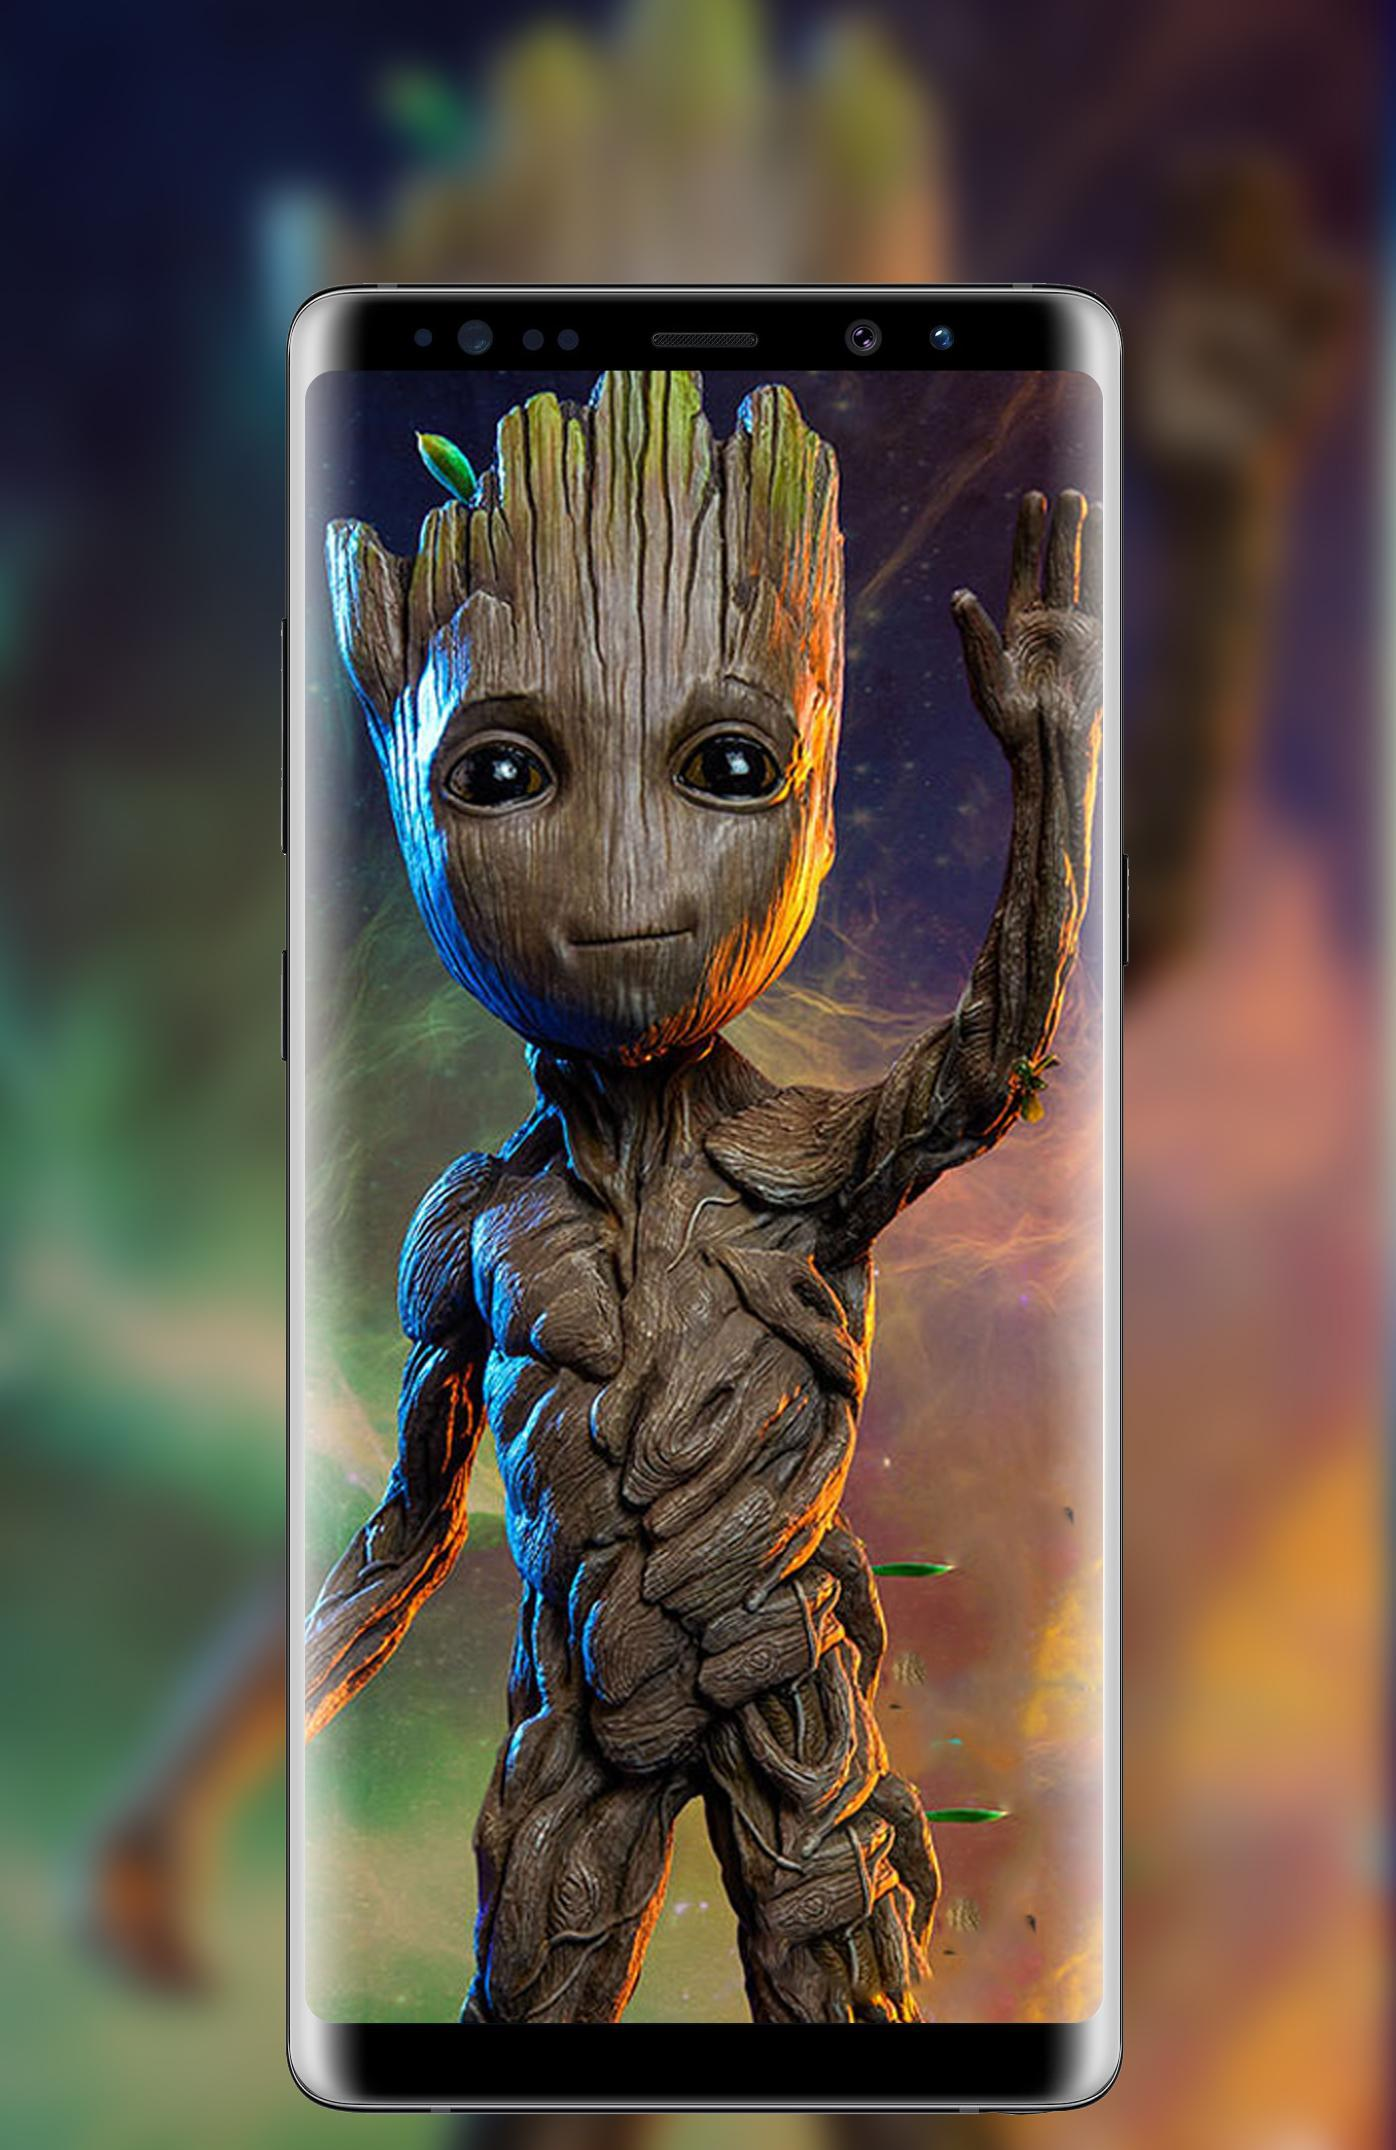 Groot Wallpaper Art For Android Apk Download